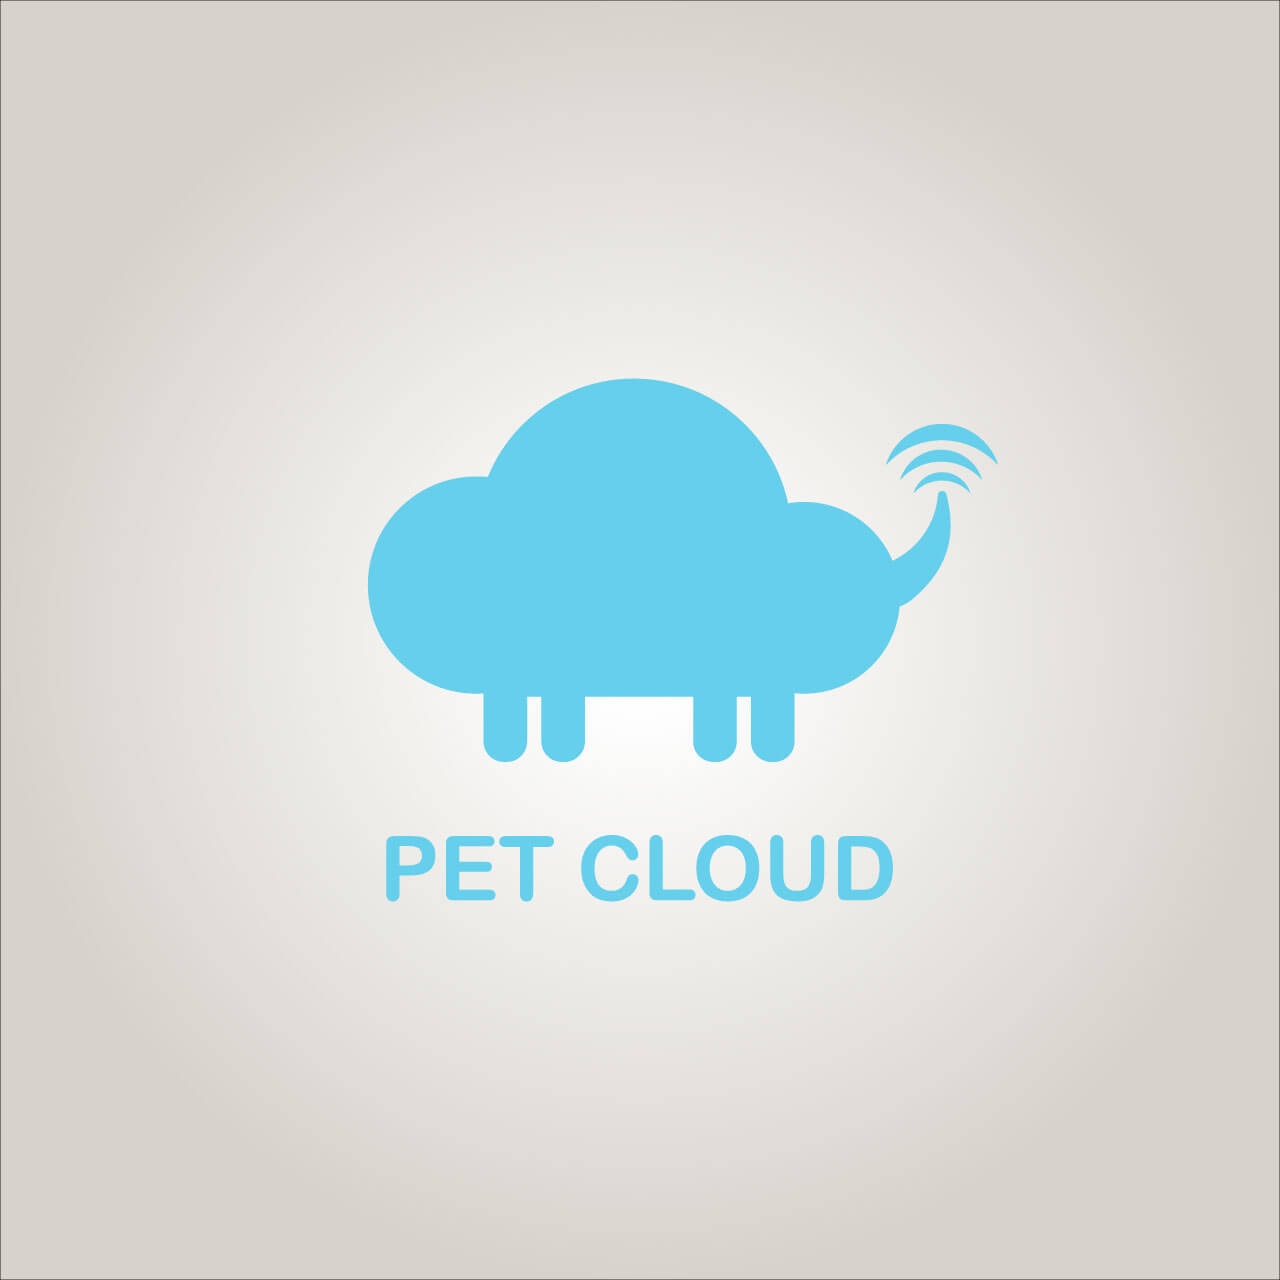 Diseño de logotipo Pet Cloud